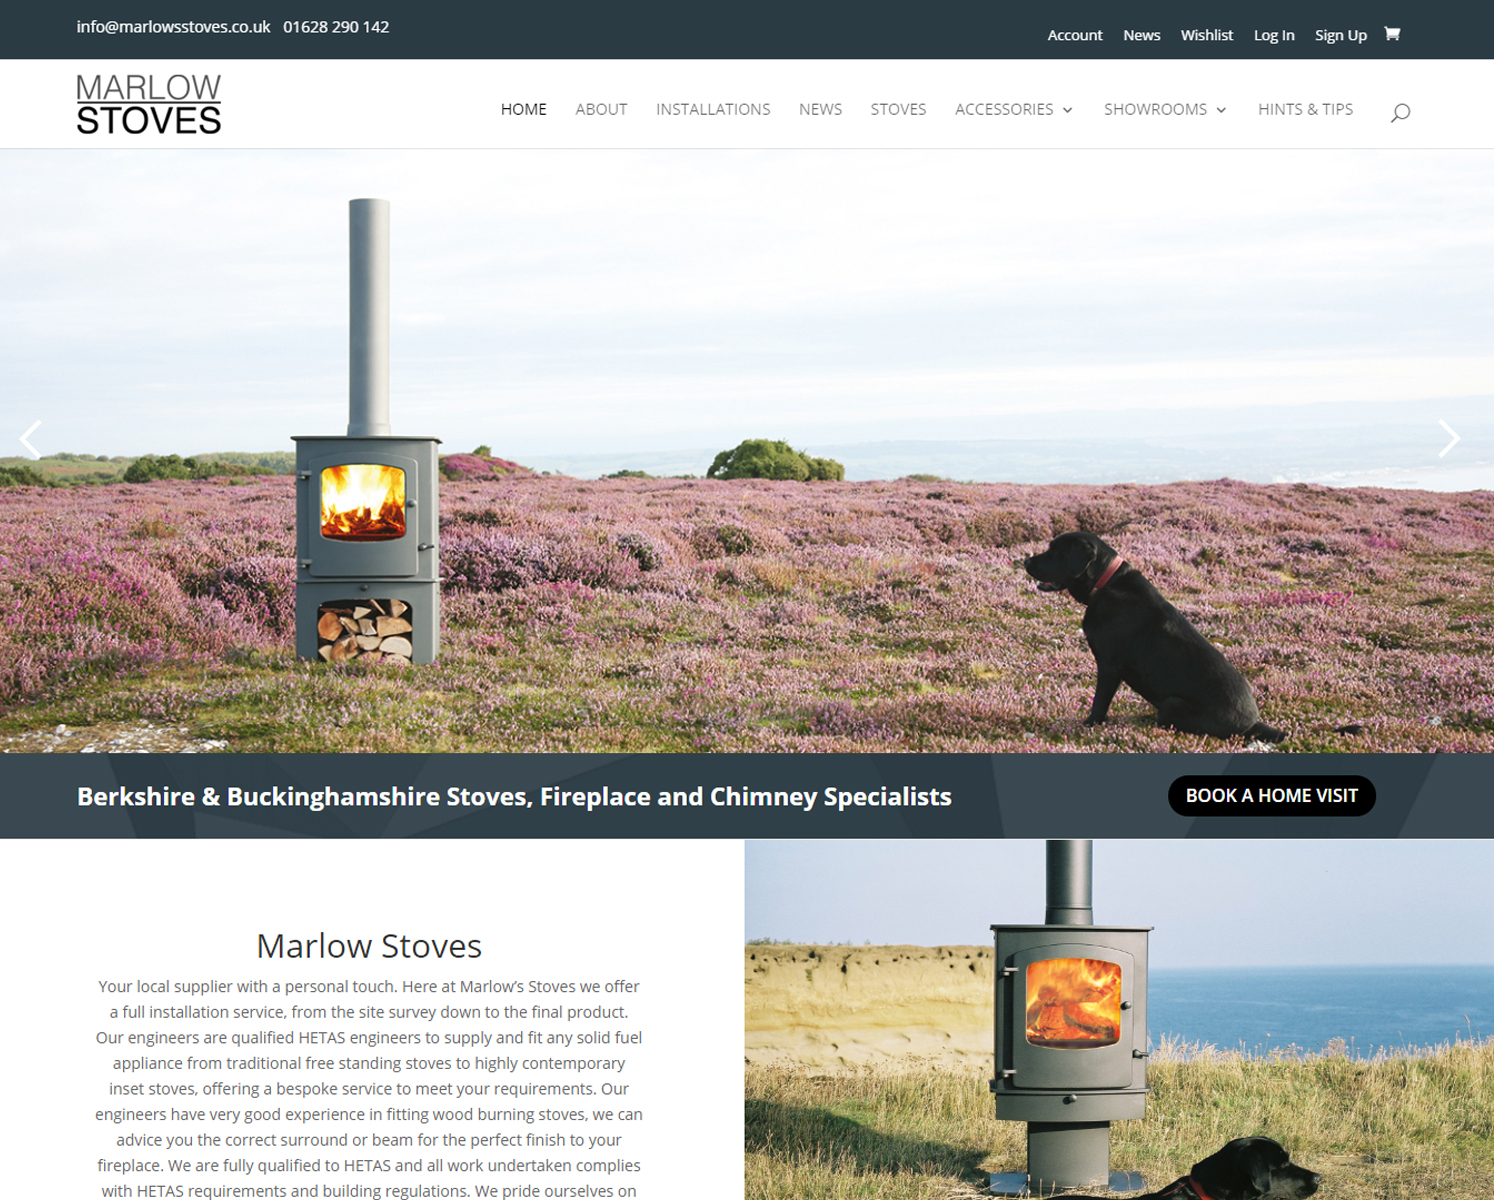 Marlow Stoves